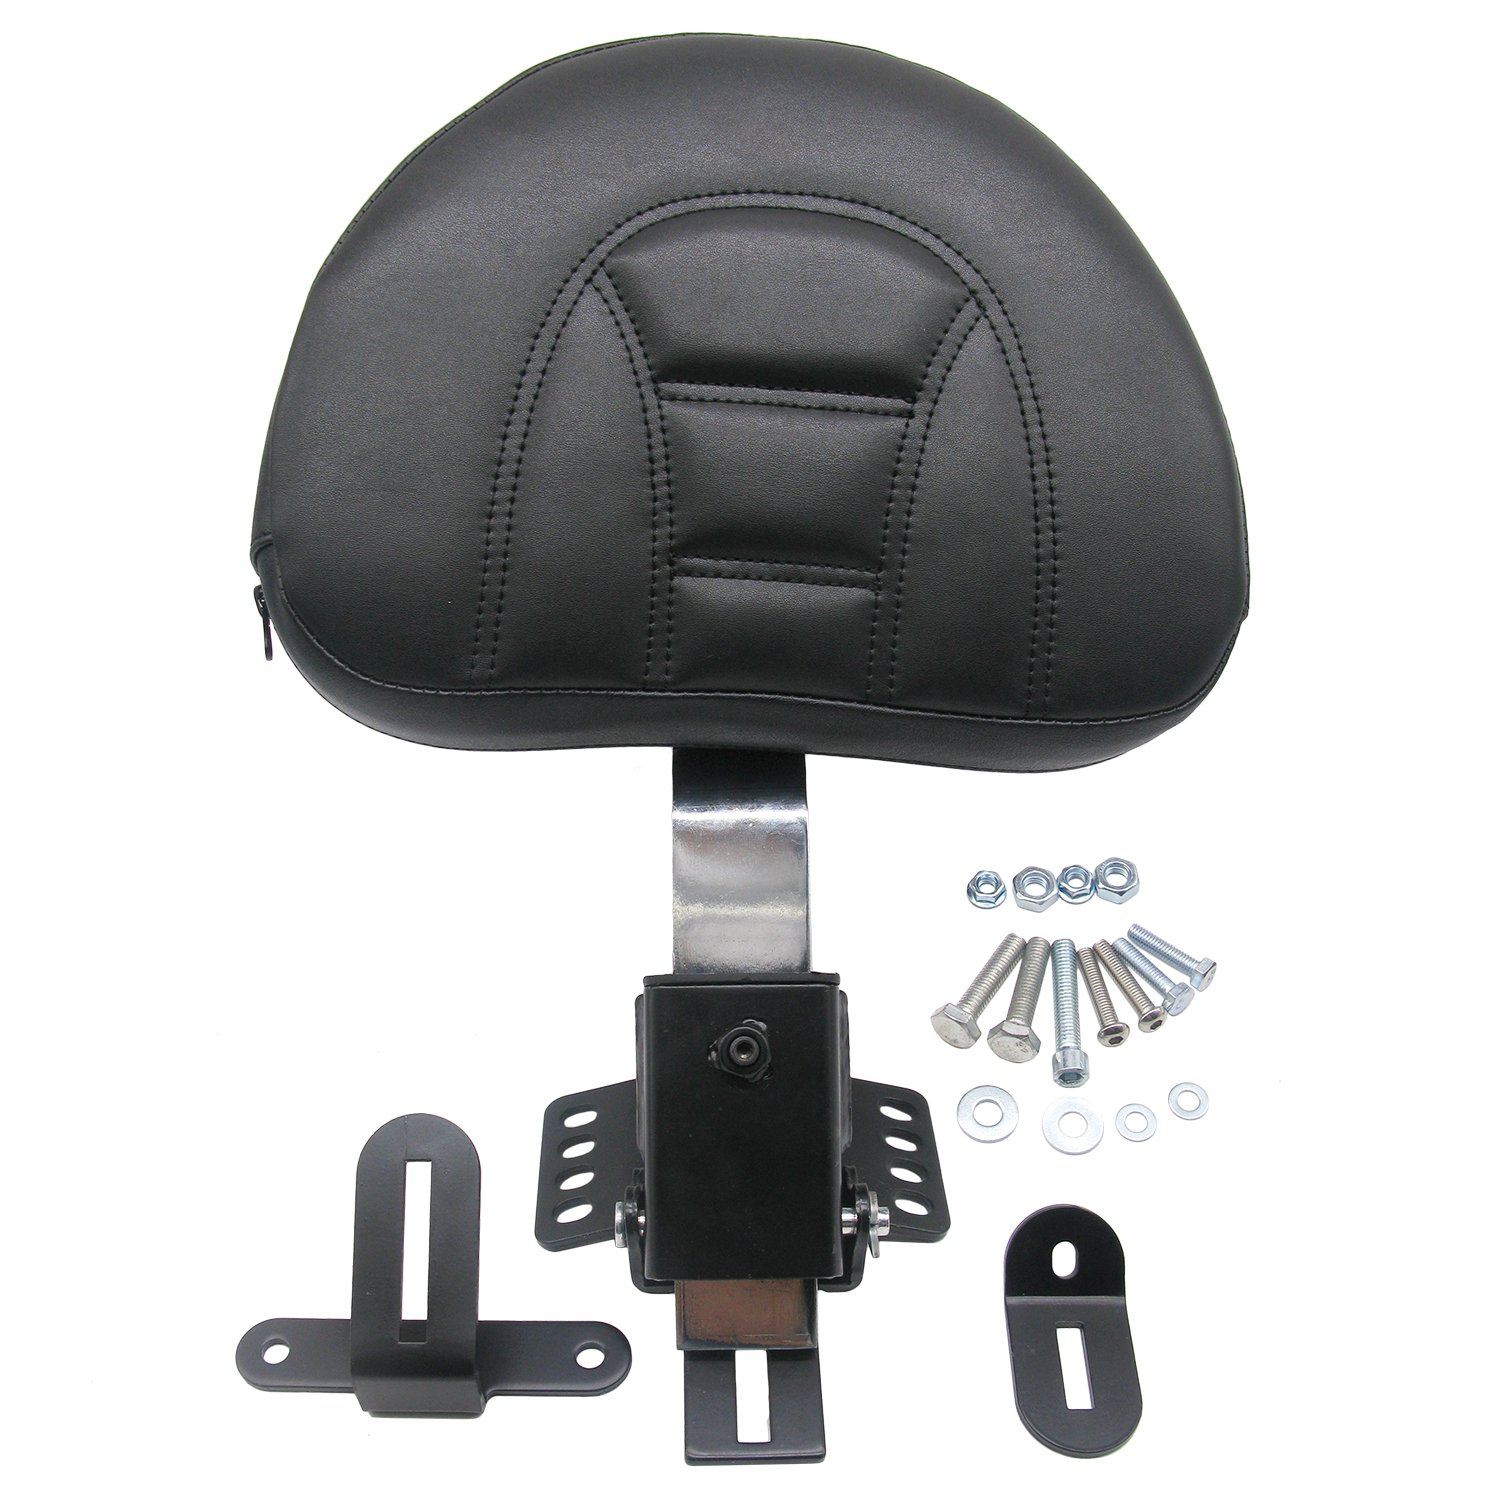 ECLEAR Driver Rider Backrest Kit Adjustable Plug-In Leather Cushion For Harley Touring 1997-2017